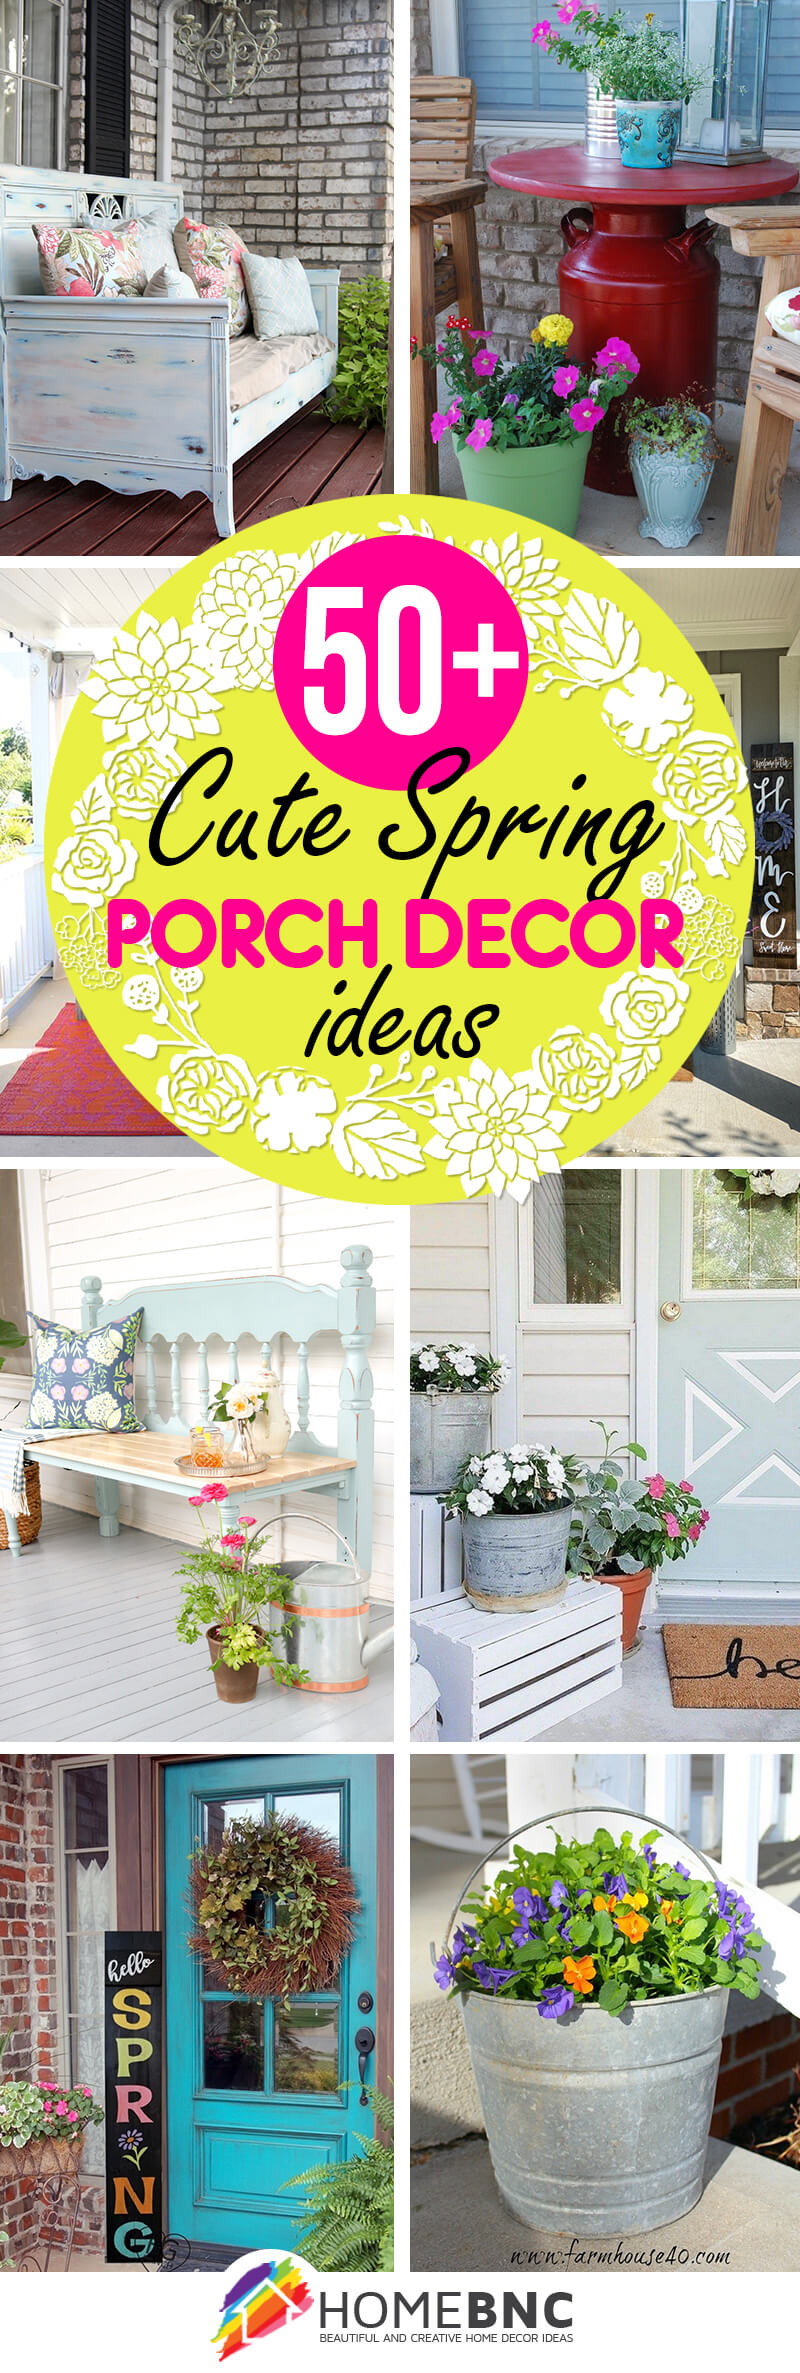 50 Best Spring Porch Decor Ideas And Designs For 2021